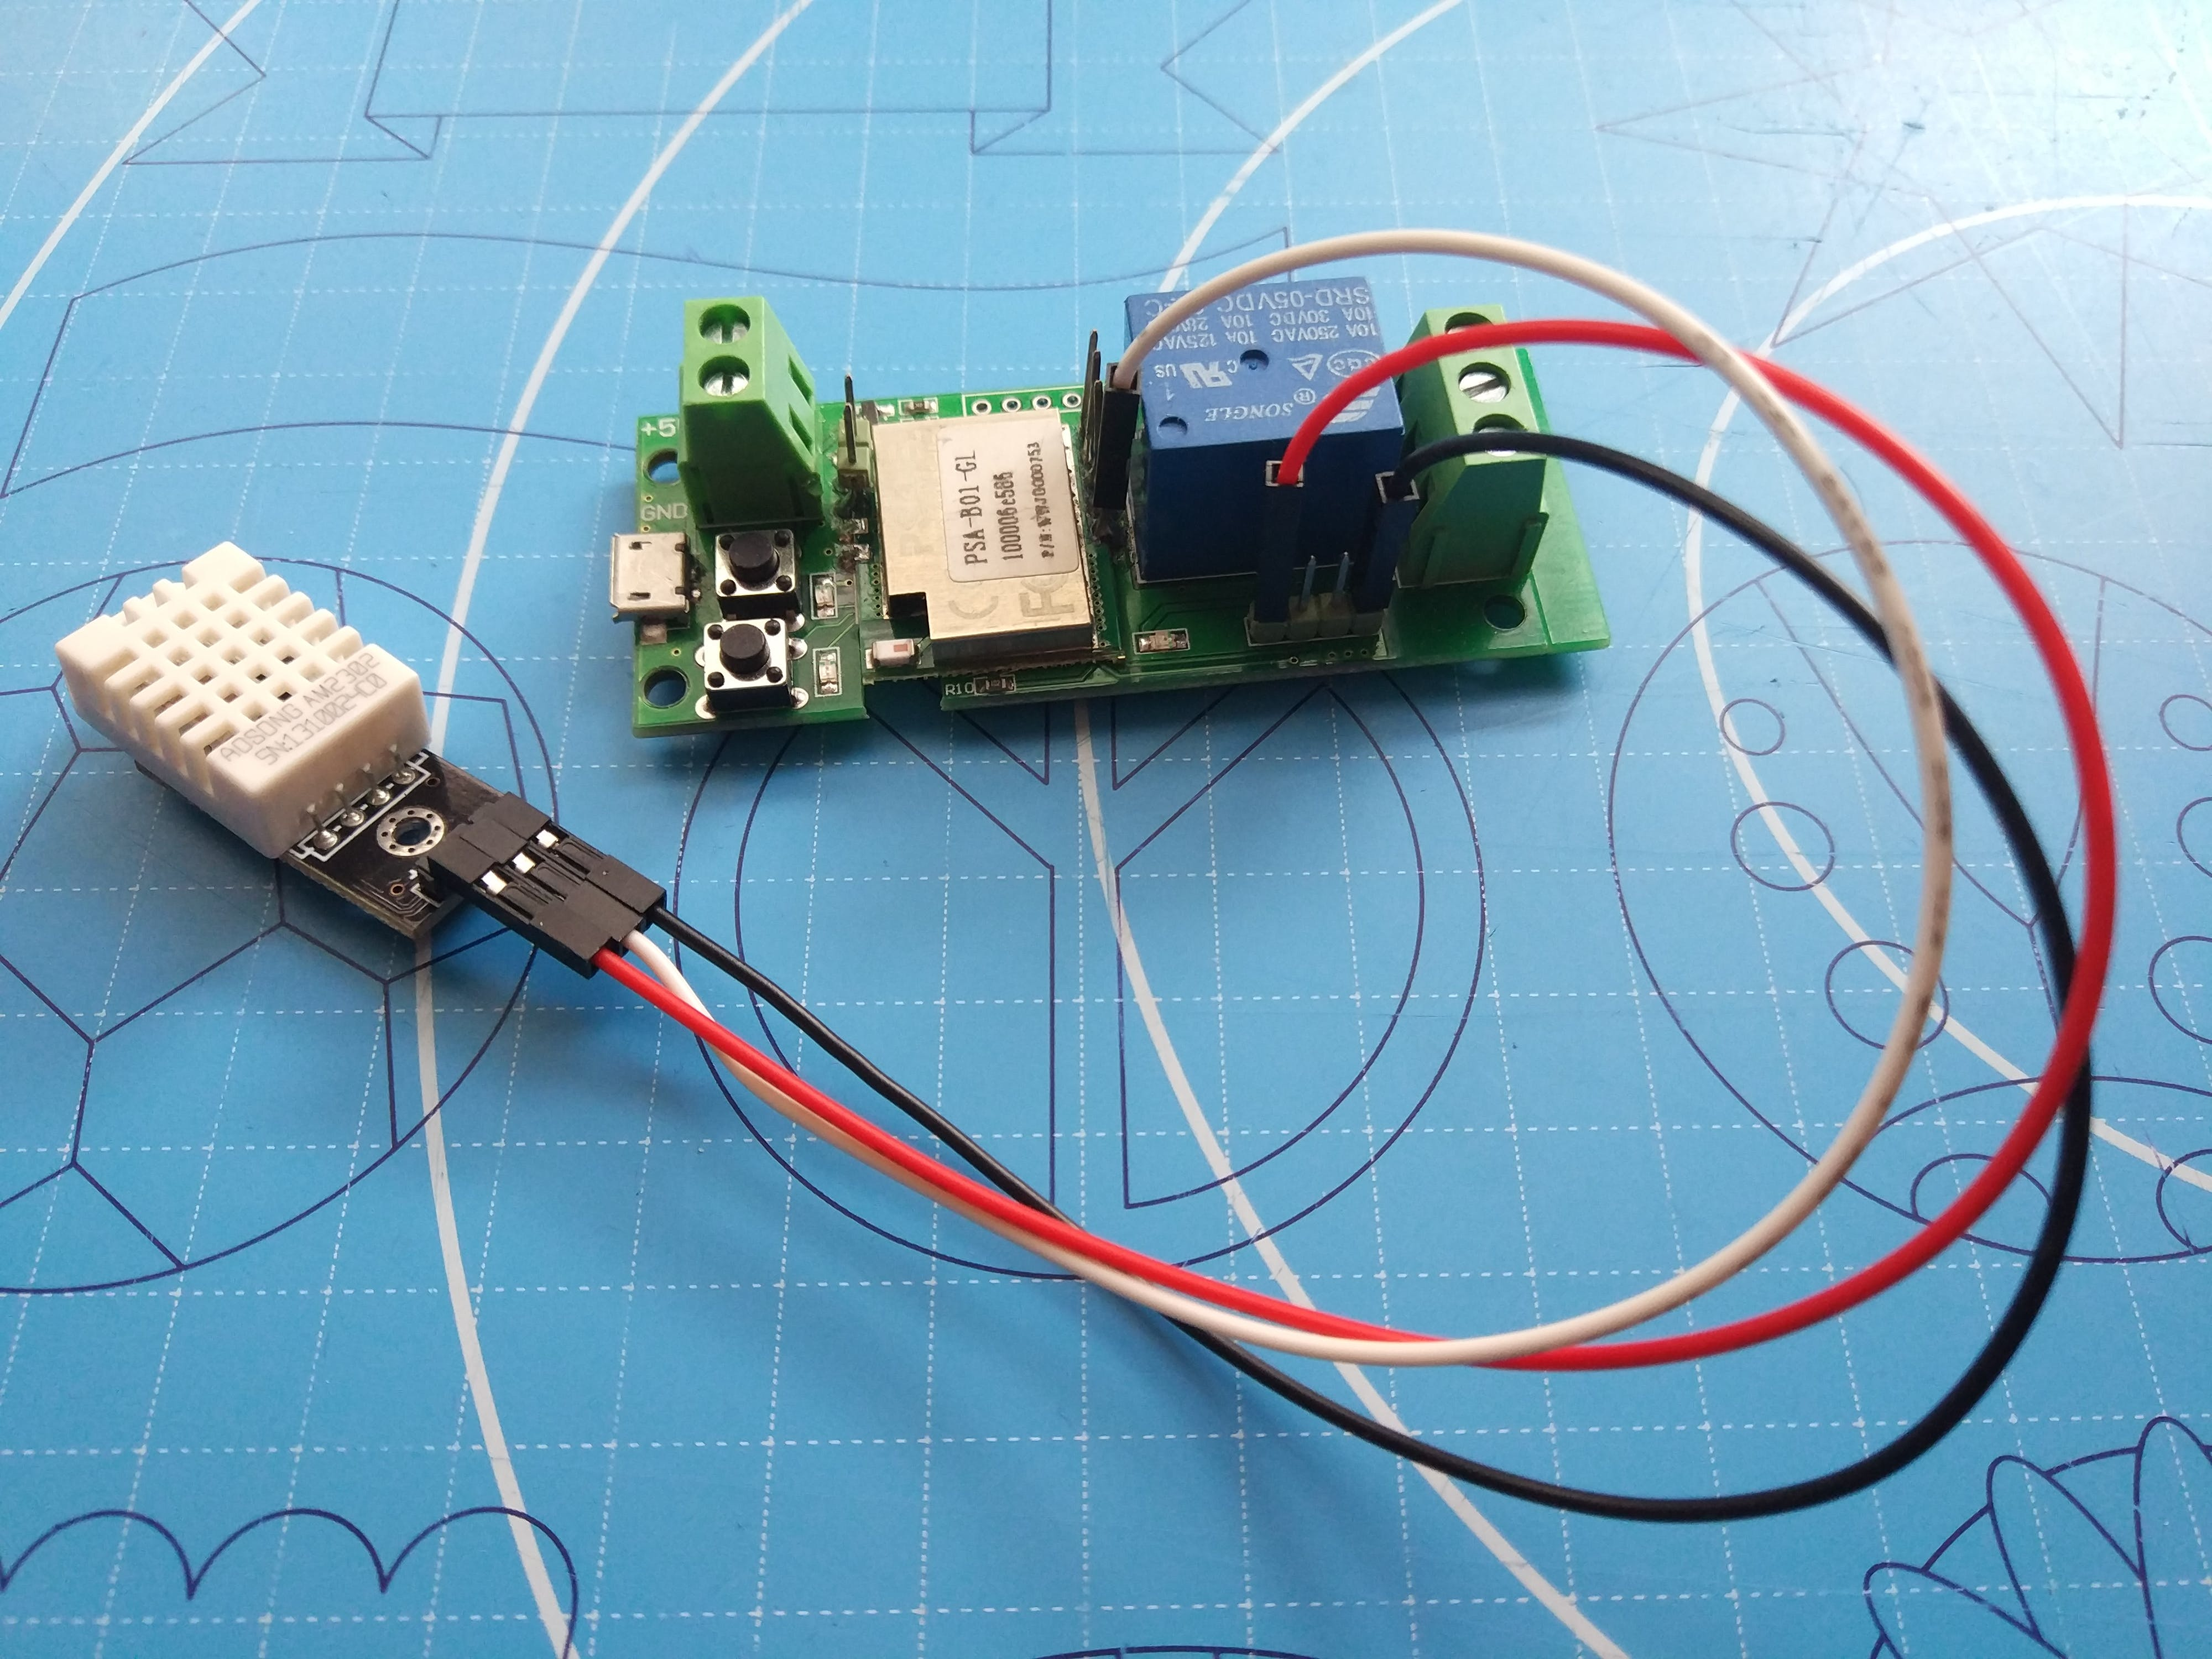 DHT22/AM2302 Temperature & Humidity sensor wired to soldered pins 3v3, GND and GPIO14